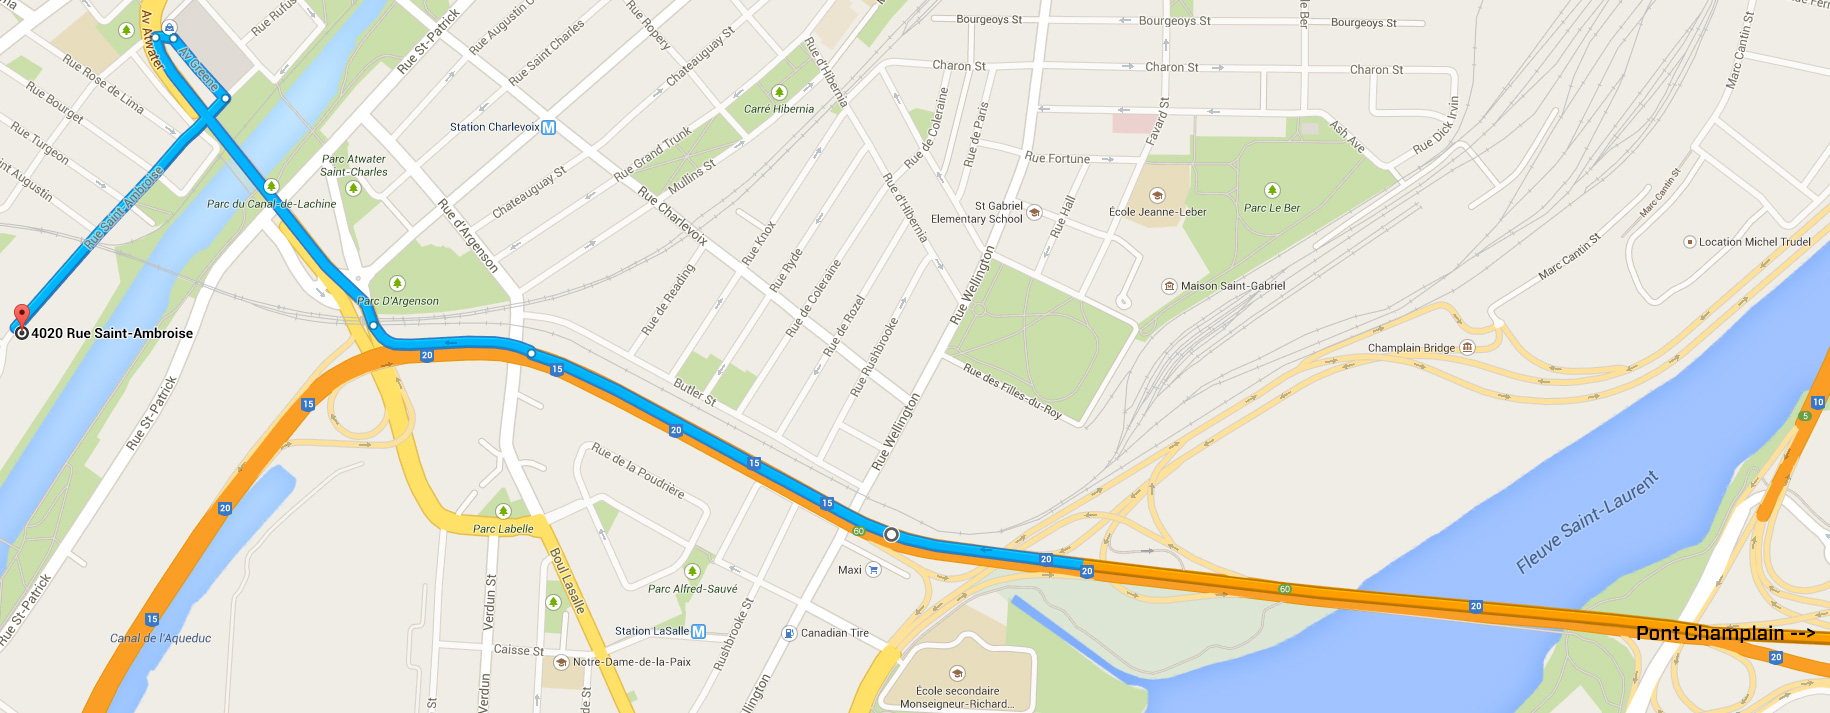 how to get to LED Montreal from pont champlain